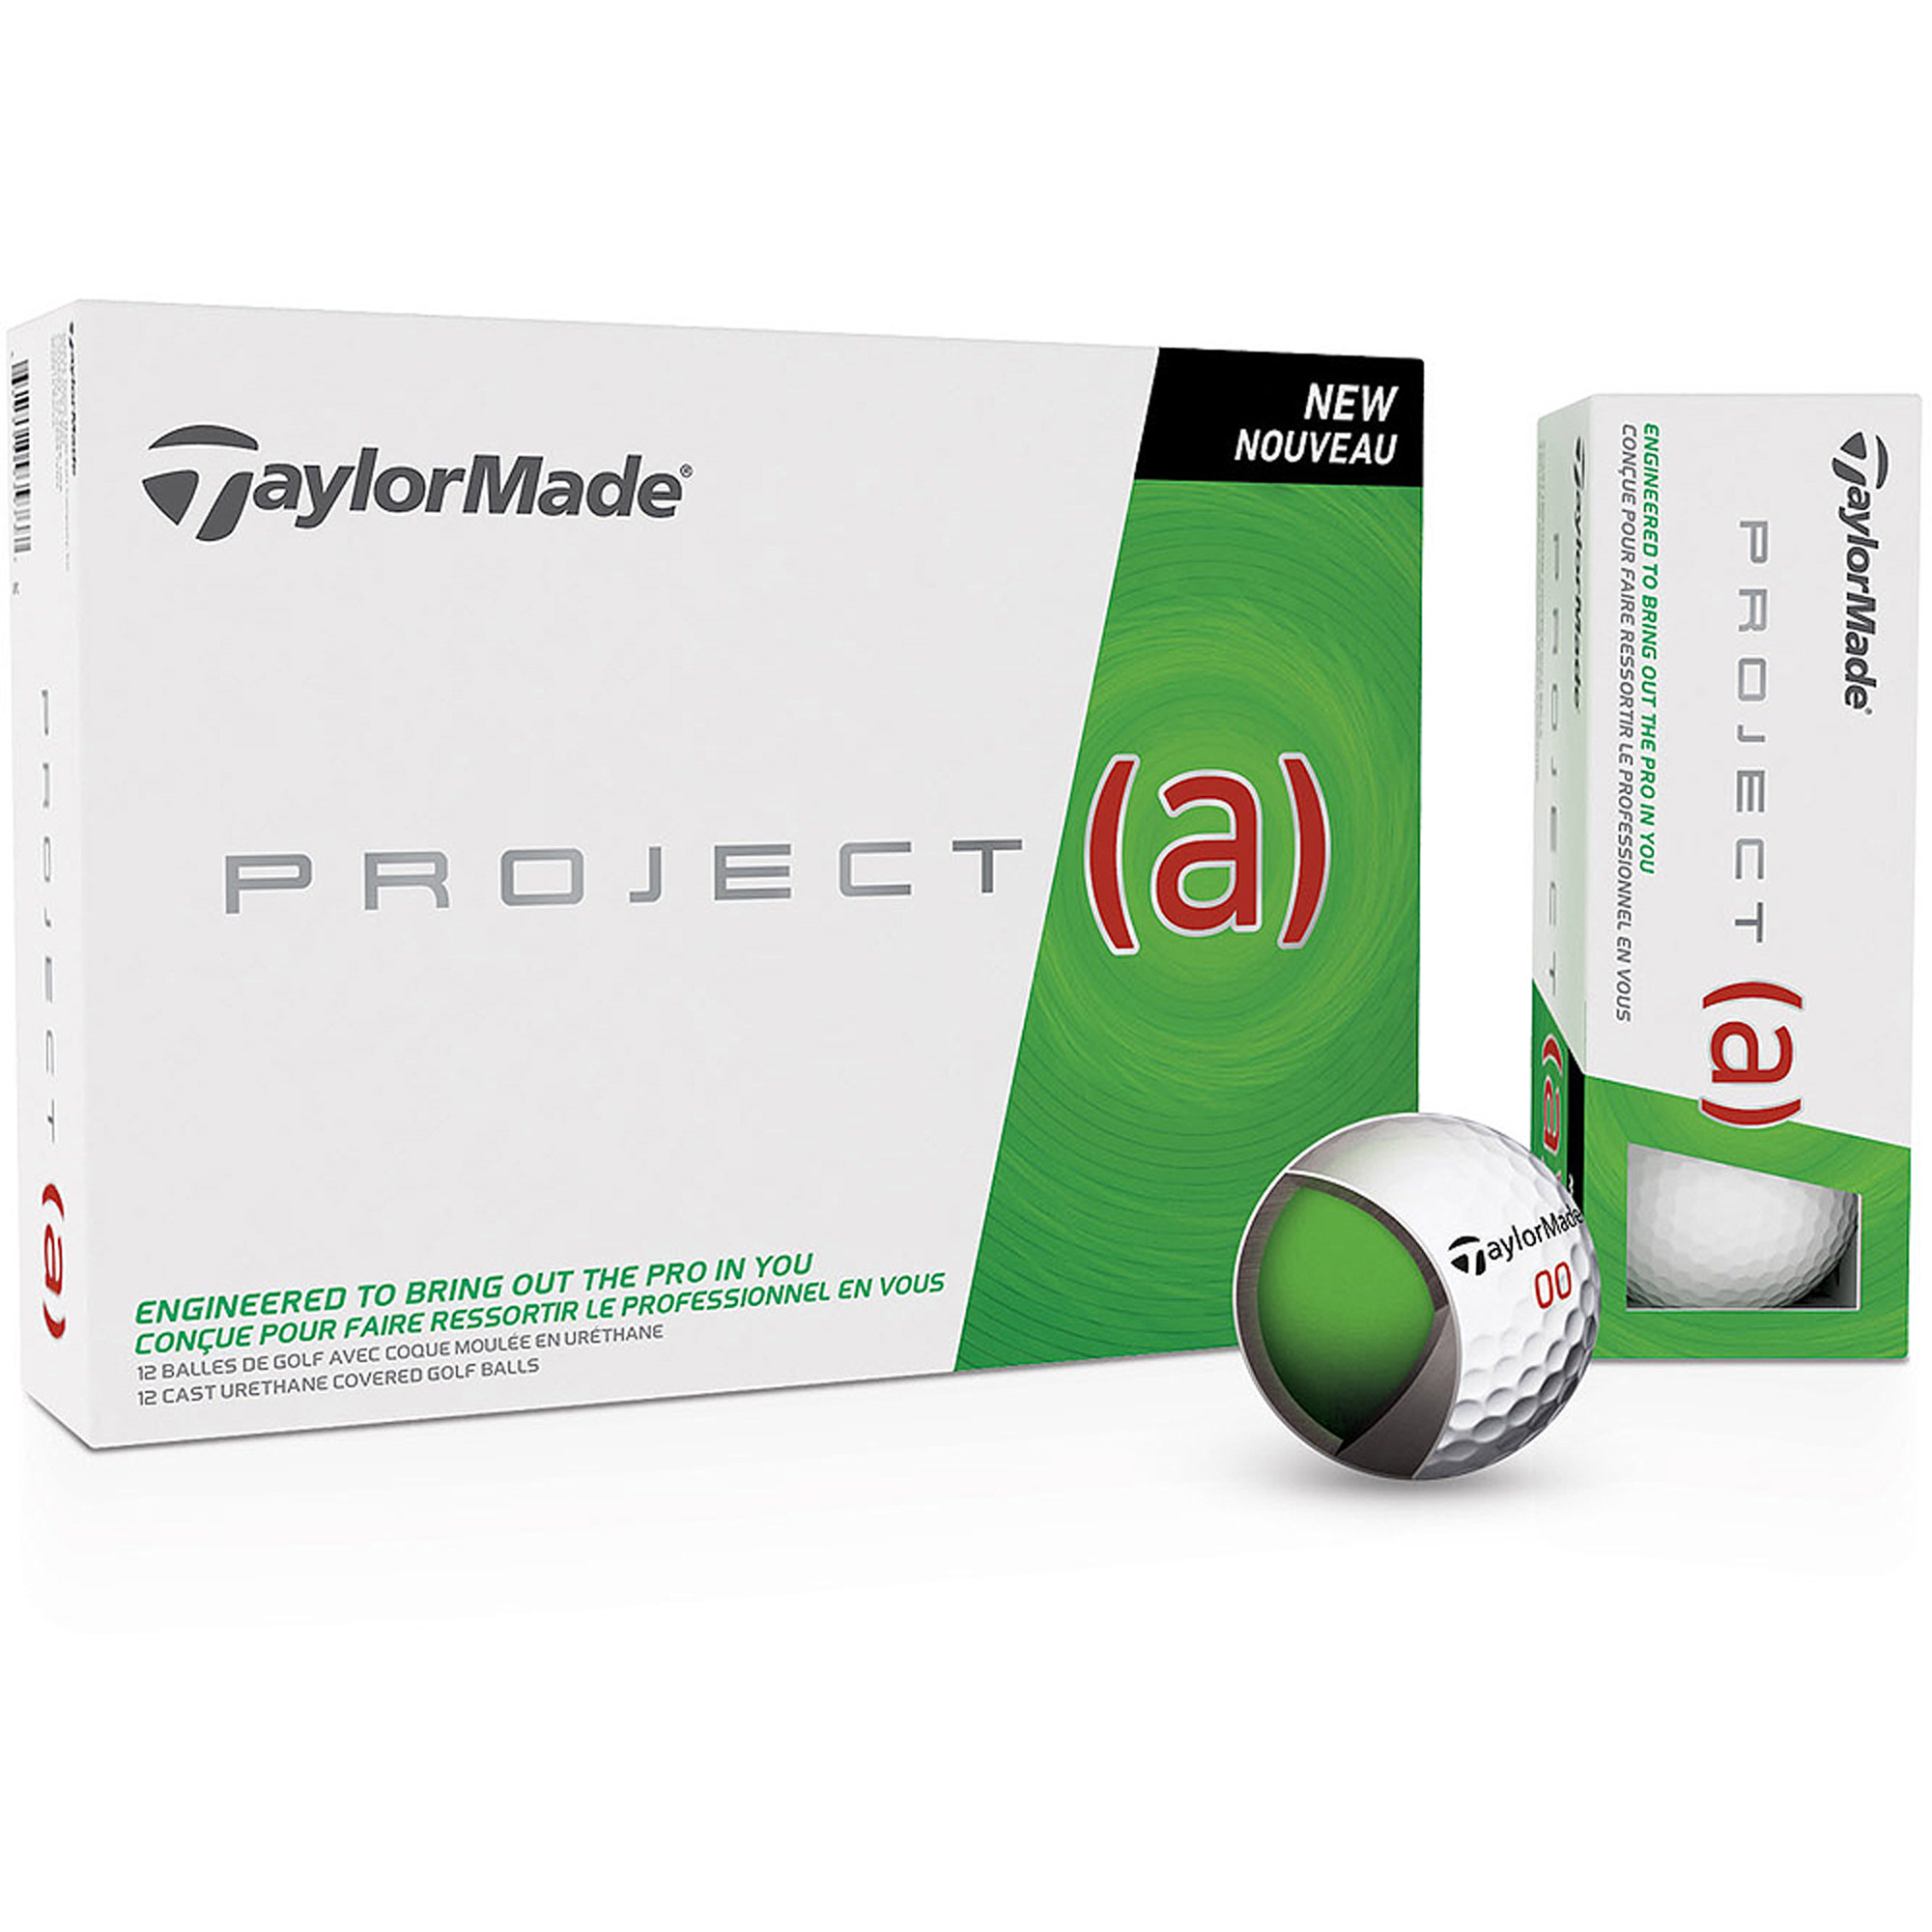 TaylorMade Project (a) Golf Balls by 19007:Taylor Made